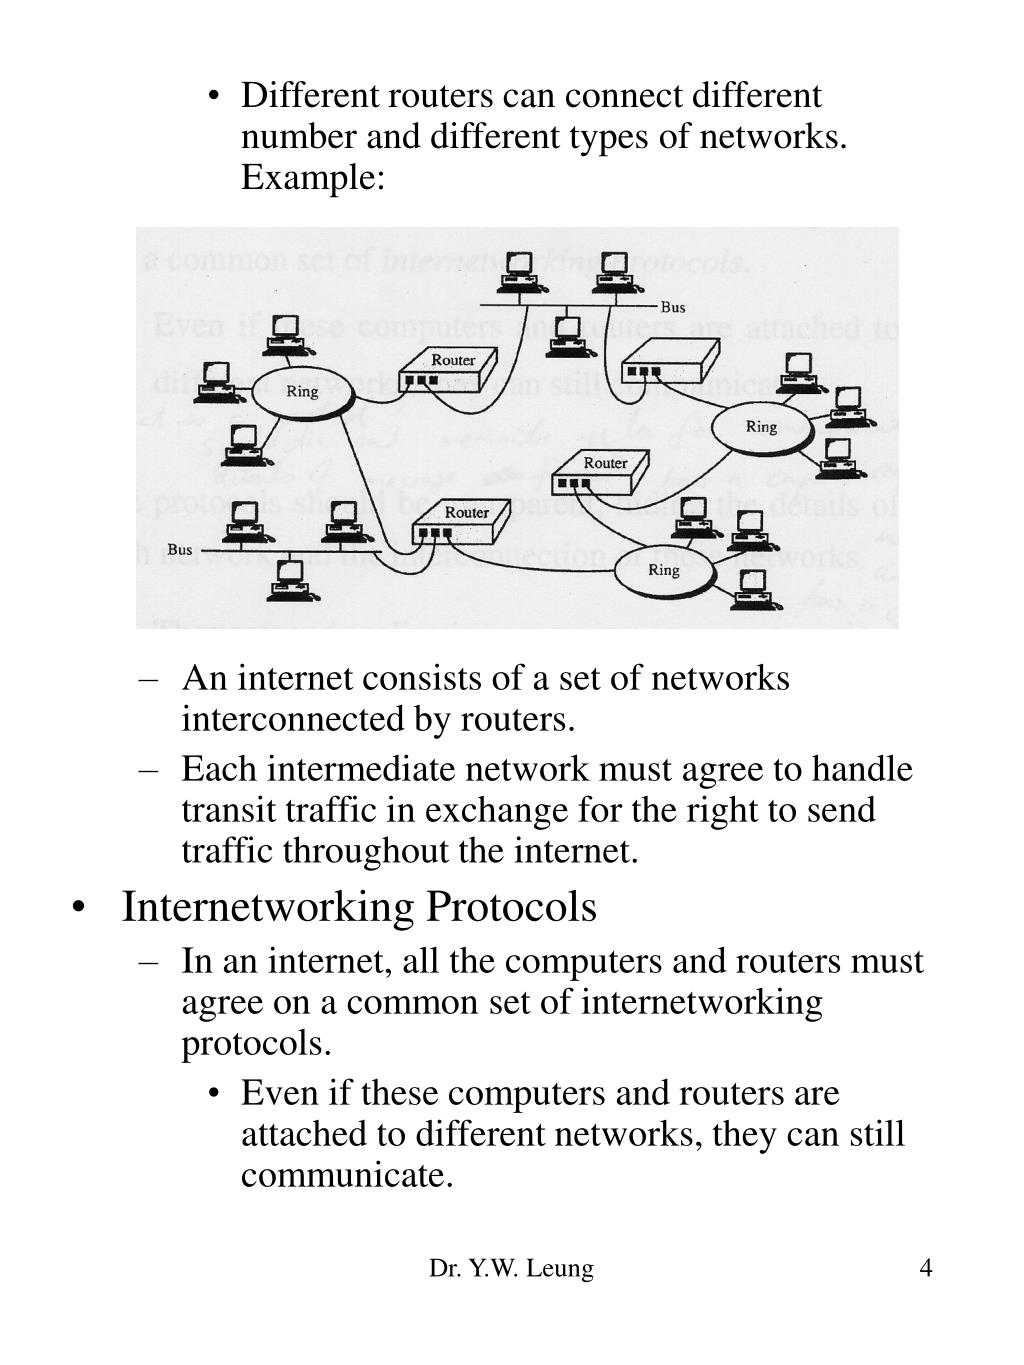 Different routers can connect different number and different types of networks.  Example: